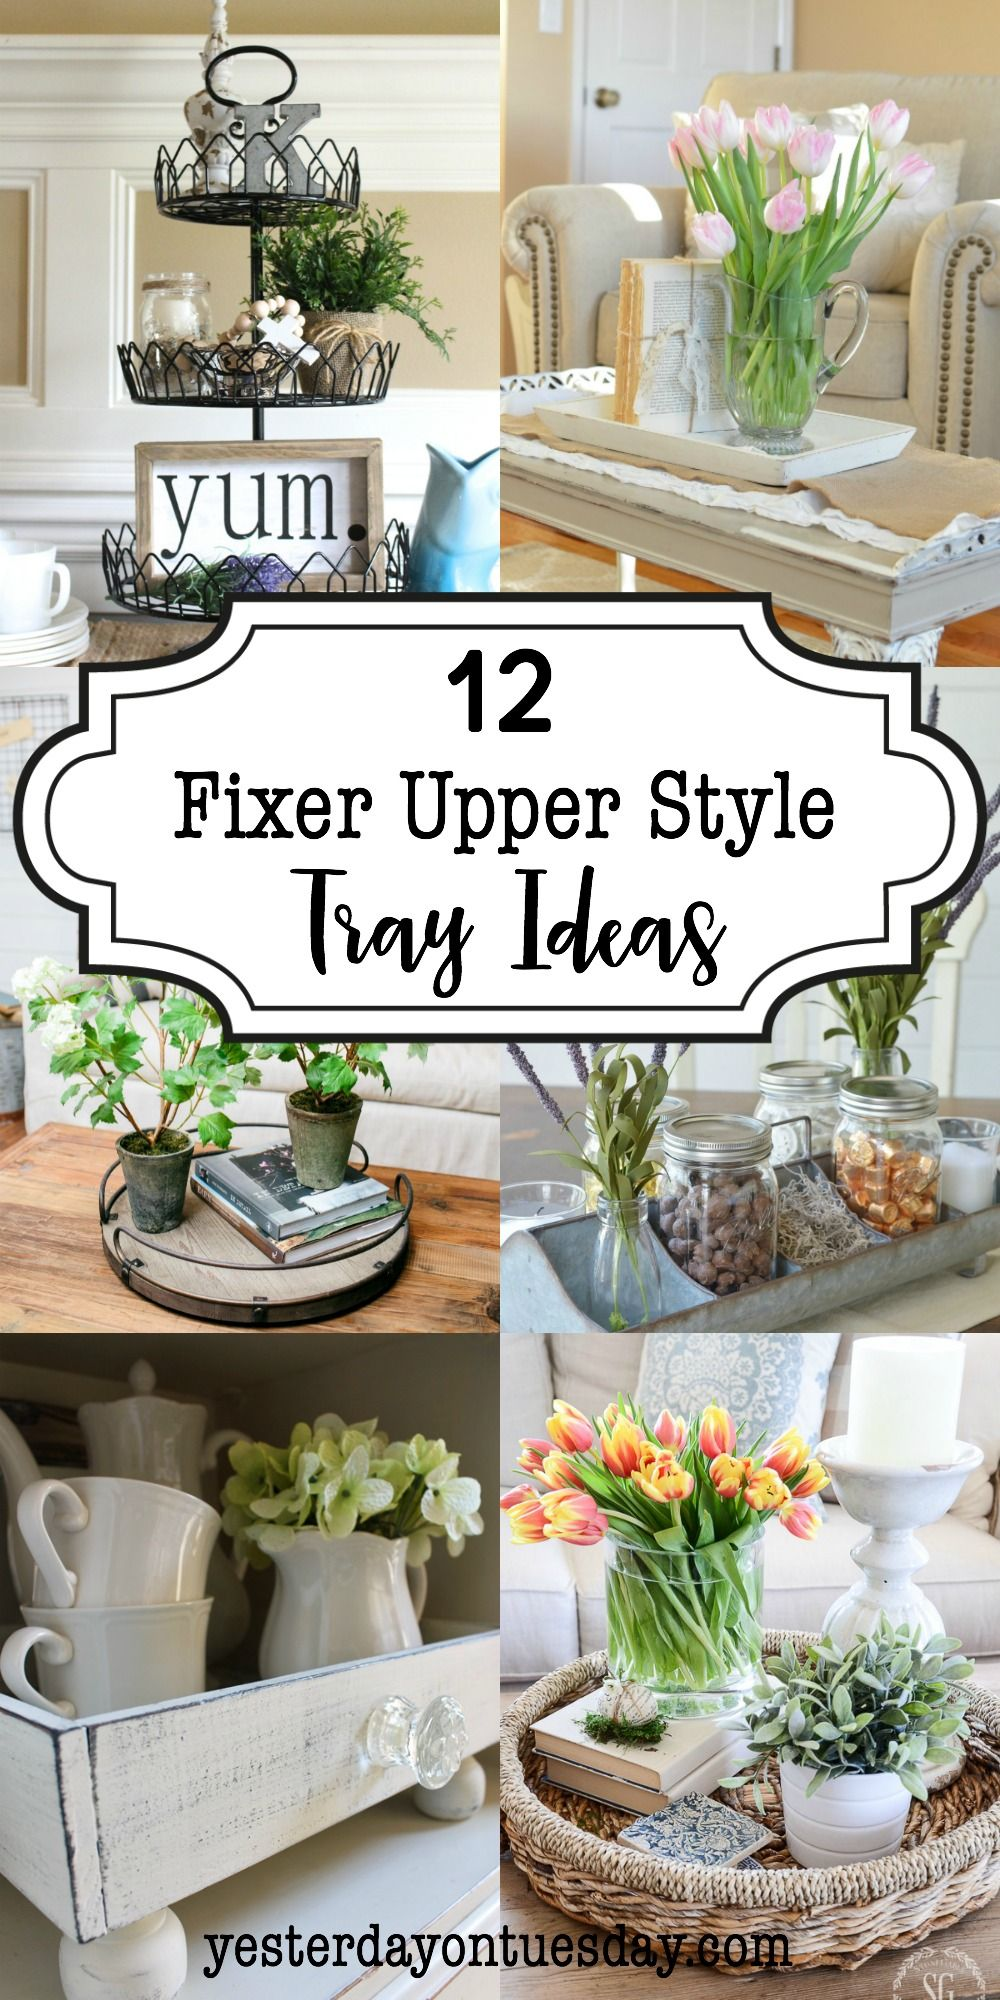 Ideas minday 1 modern farmhouse decorating - 12 Fixer Upper Style Tray Ideas Lovely Ways To Add A Modern Farmhouse Look To